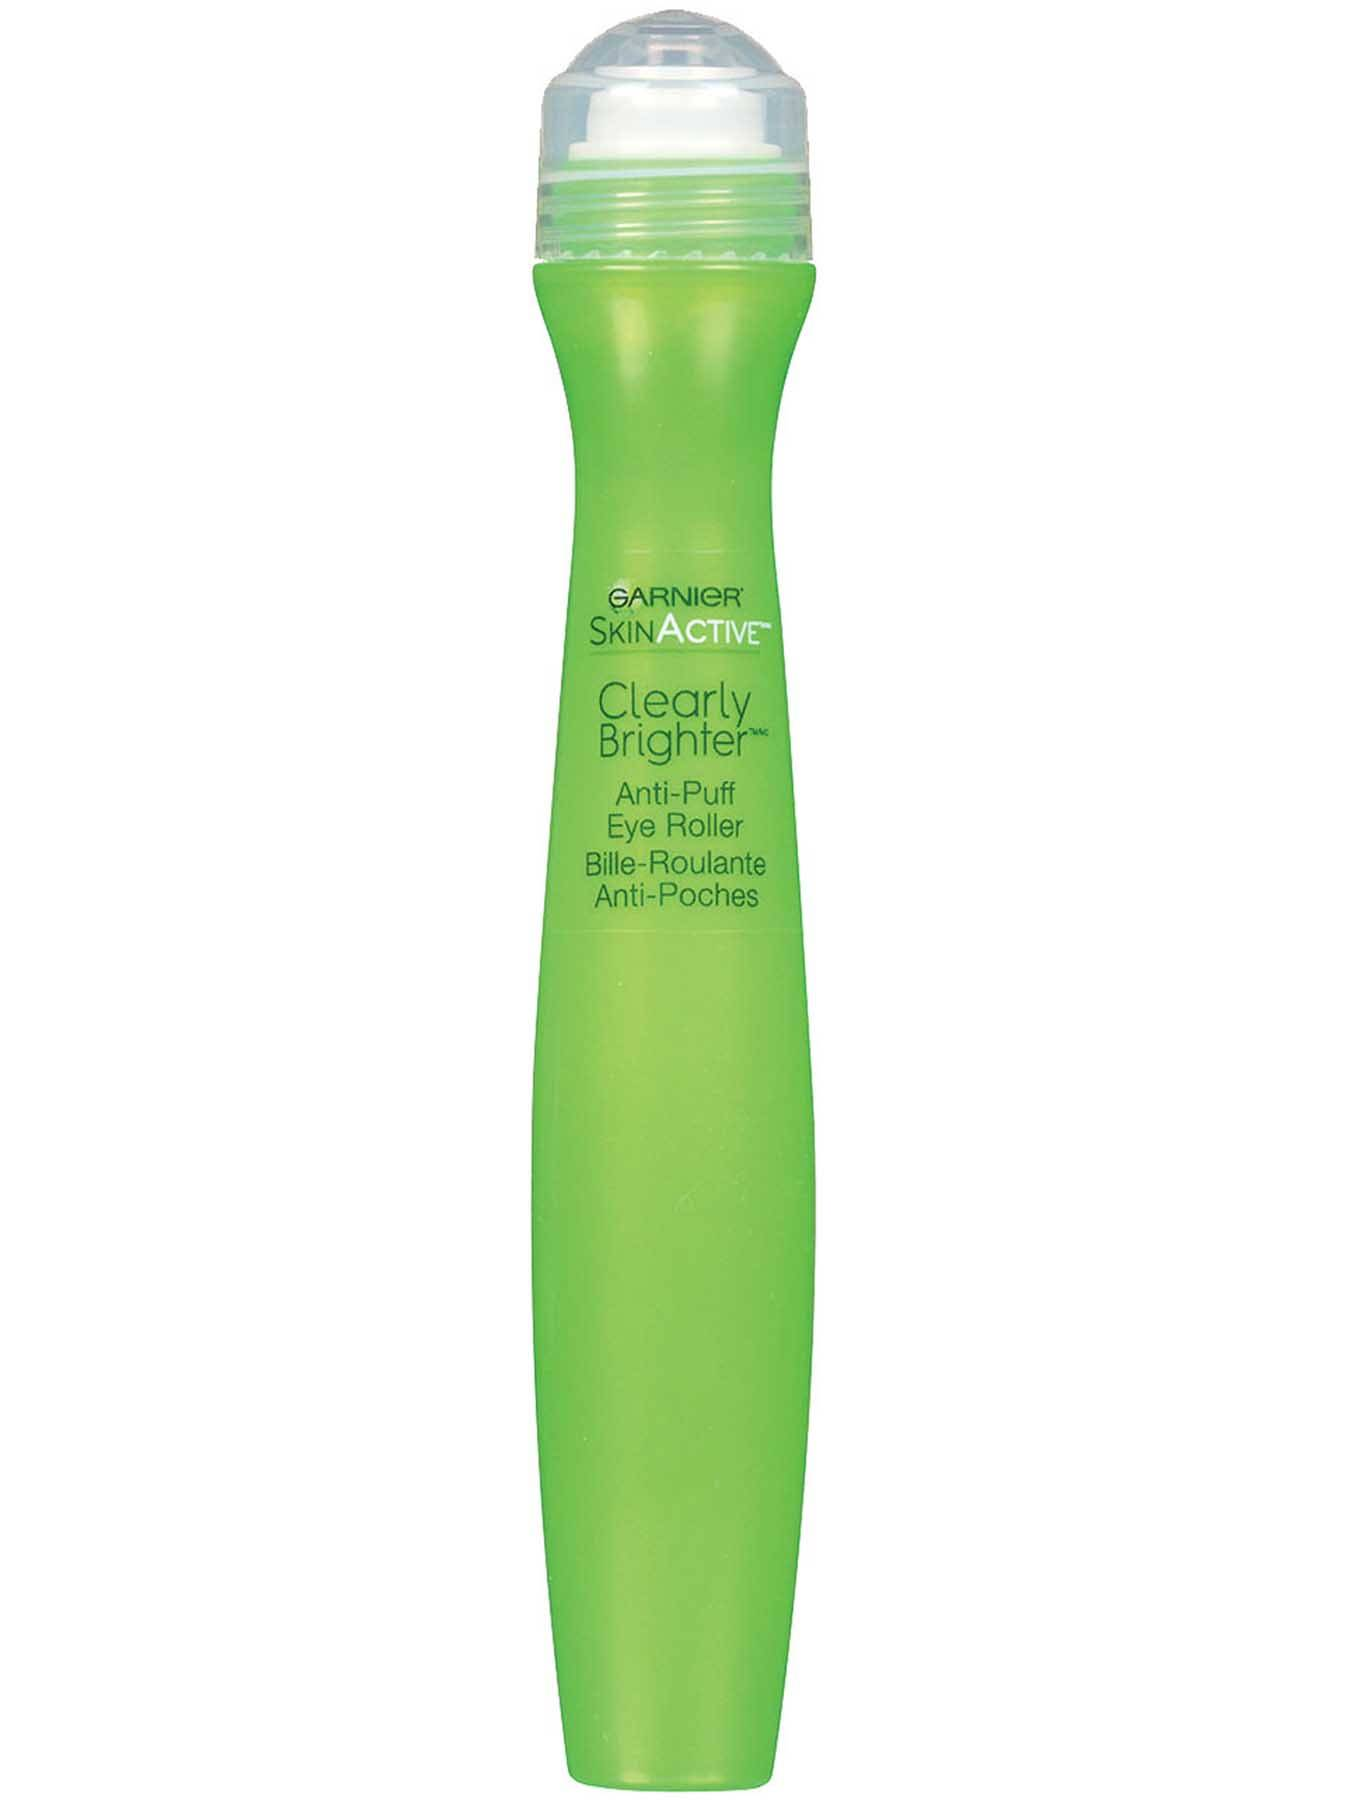 Garnier SkinActive Clearly Brighter Anti-Puff Eye Roller Box Right